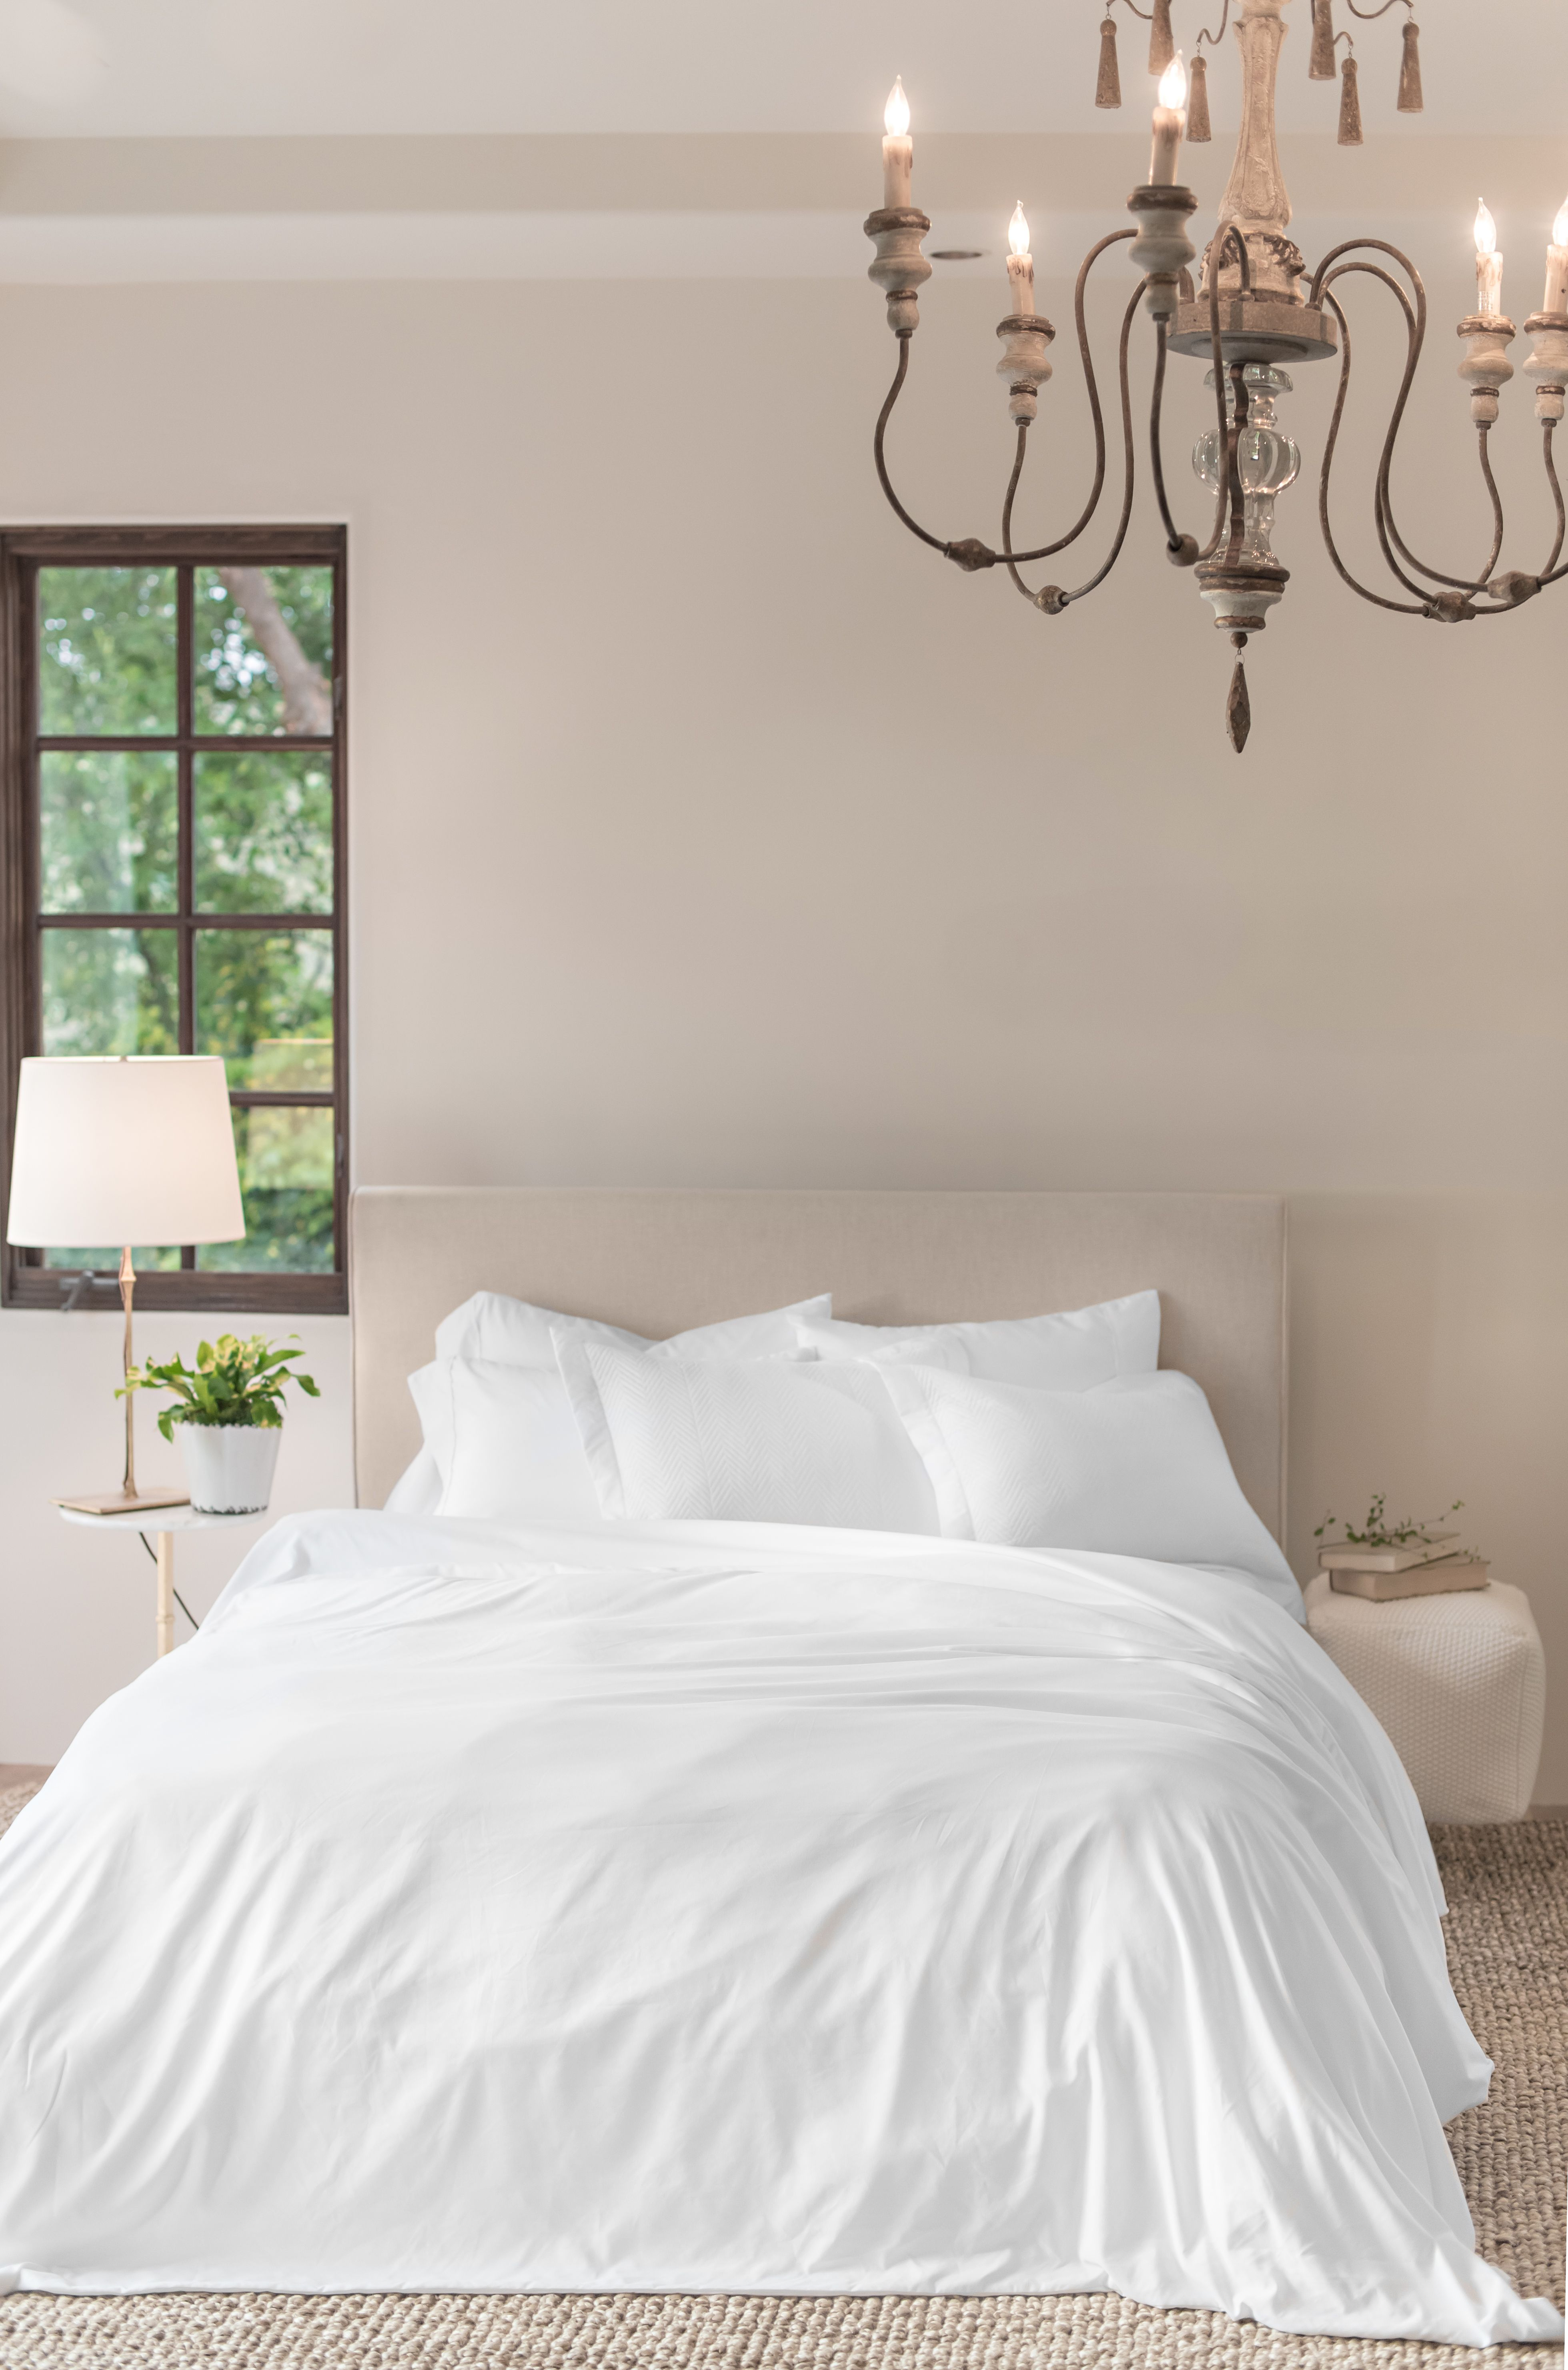 Introducing The Softest Bedding, Most Premium Bedding You Will Ever Feel In  Your Life! Our New LUX Collection Of The Softest Sheets, Softest Pillow  Cases ...